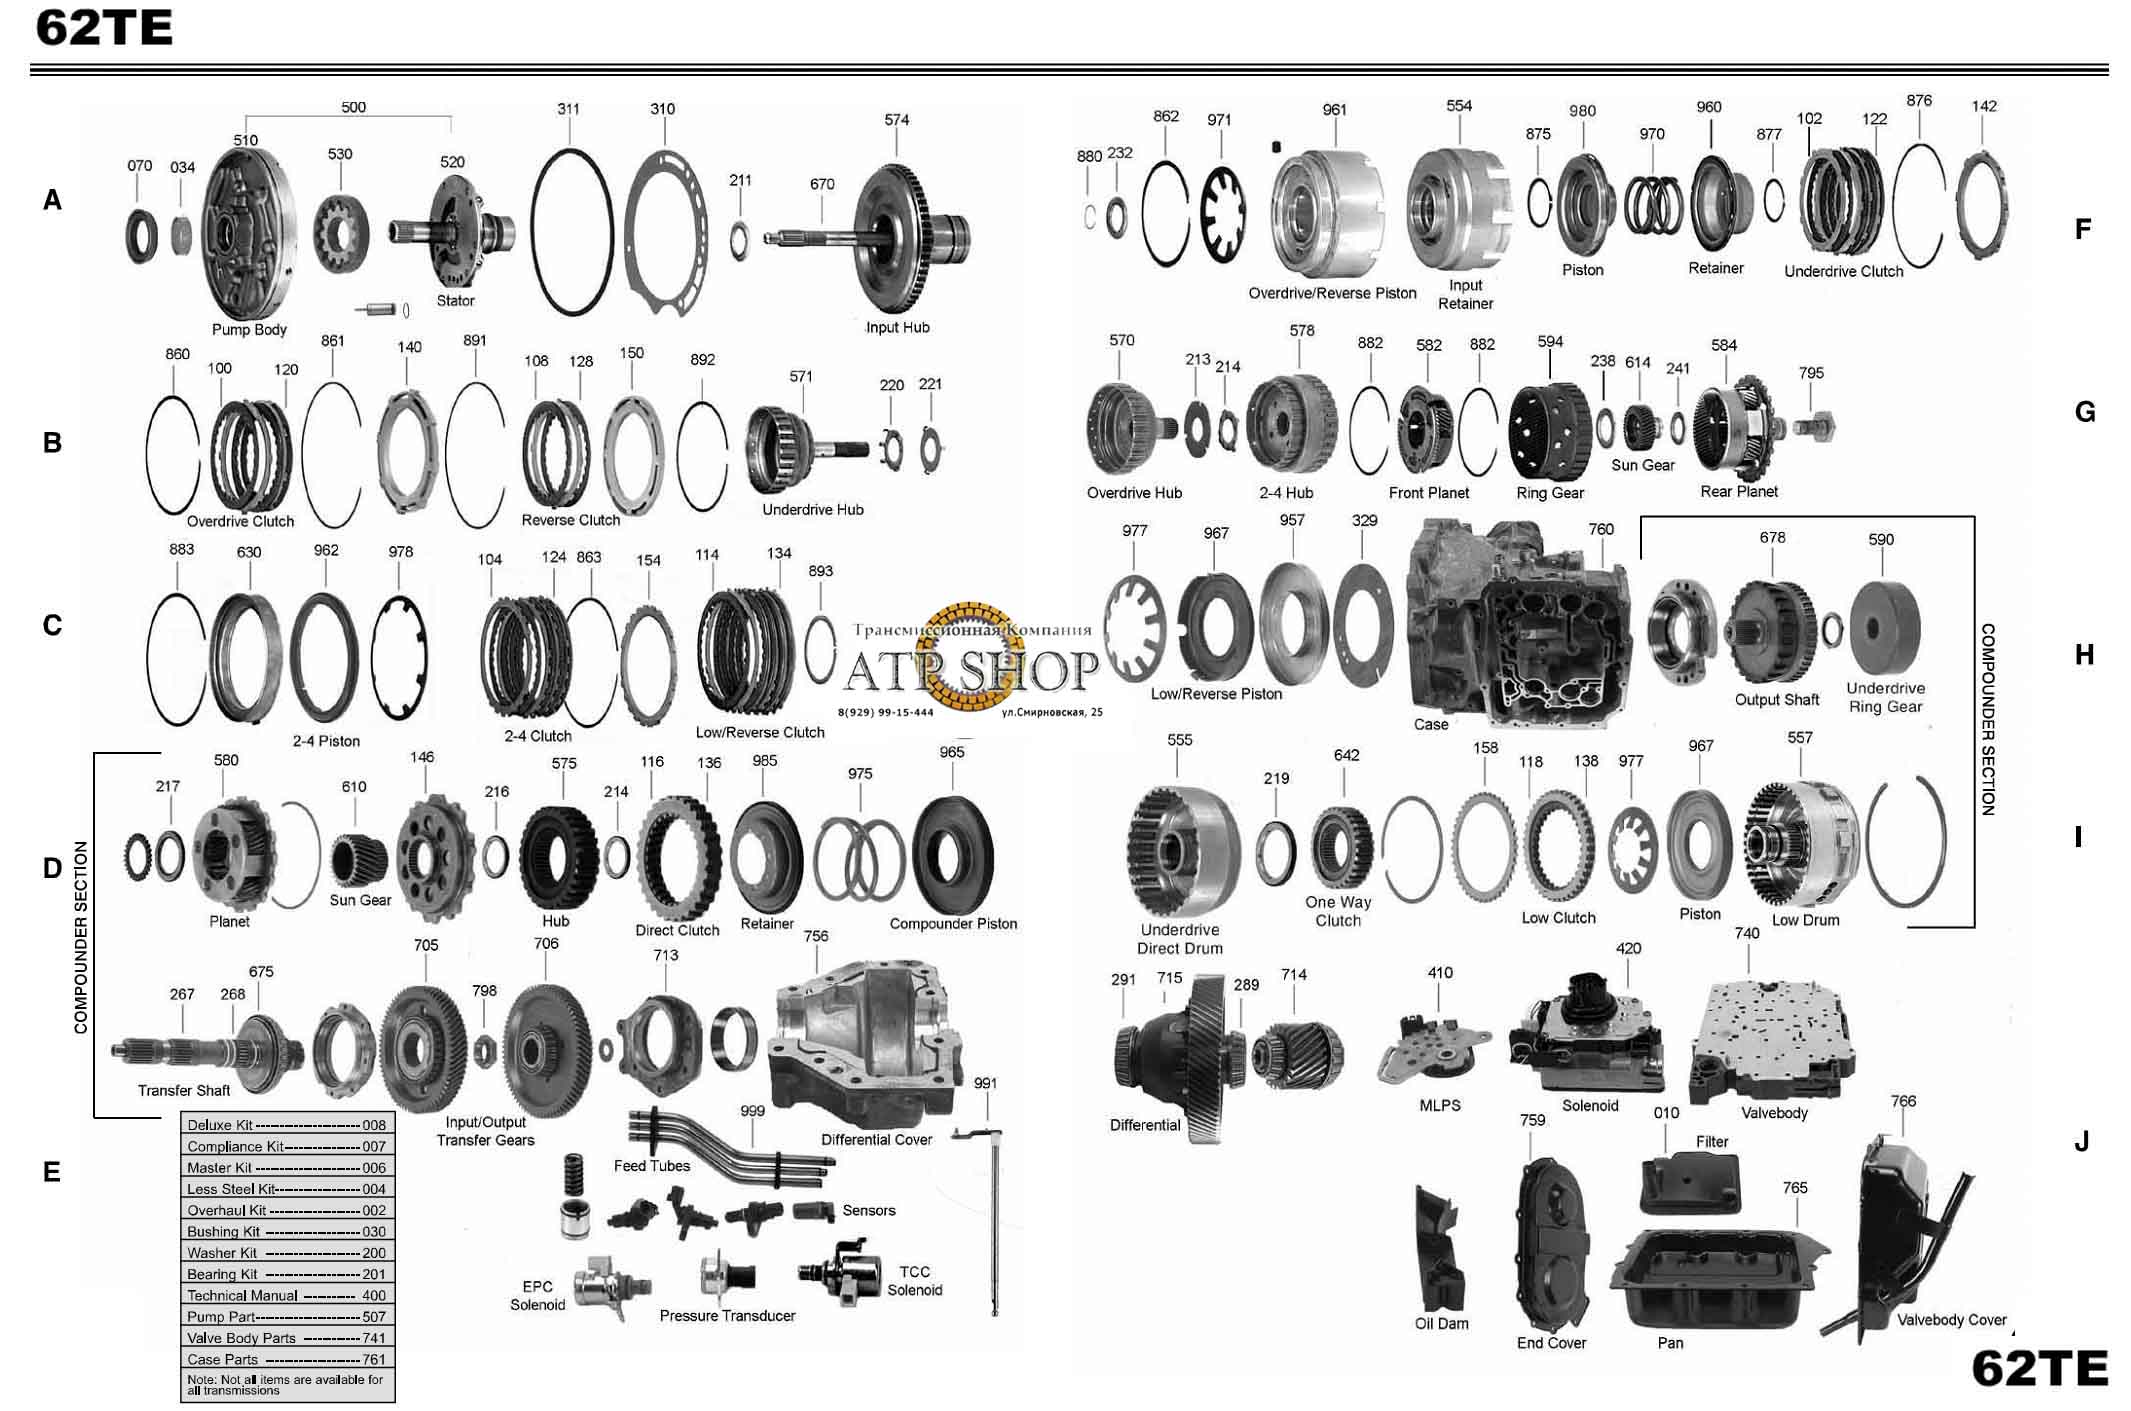 Chevy 700r4 Wiring Diagram likewise P 0900c152800a82f4 likewise 4l60e Solenoid Wire Harness Replacement moreover 2004r Parts Diagram TjaxeSkHHPeYboKWrG wEDfNgCC2rdCANXc 7COFJXDjs together with Schematics wiring. on 4l60e transmission wiring diagram